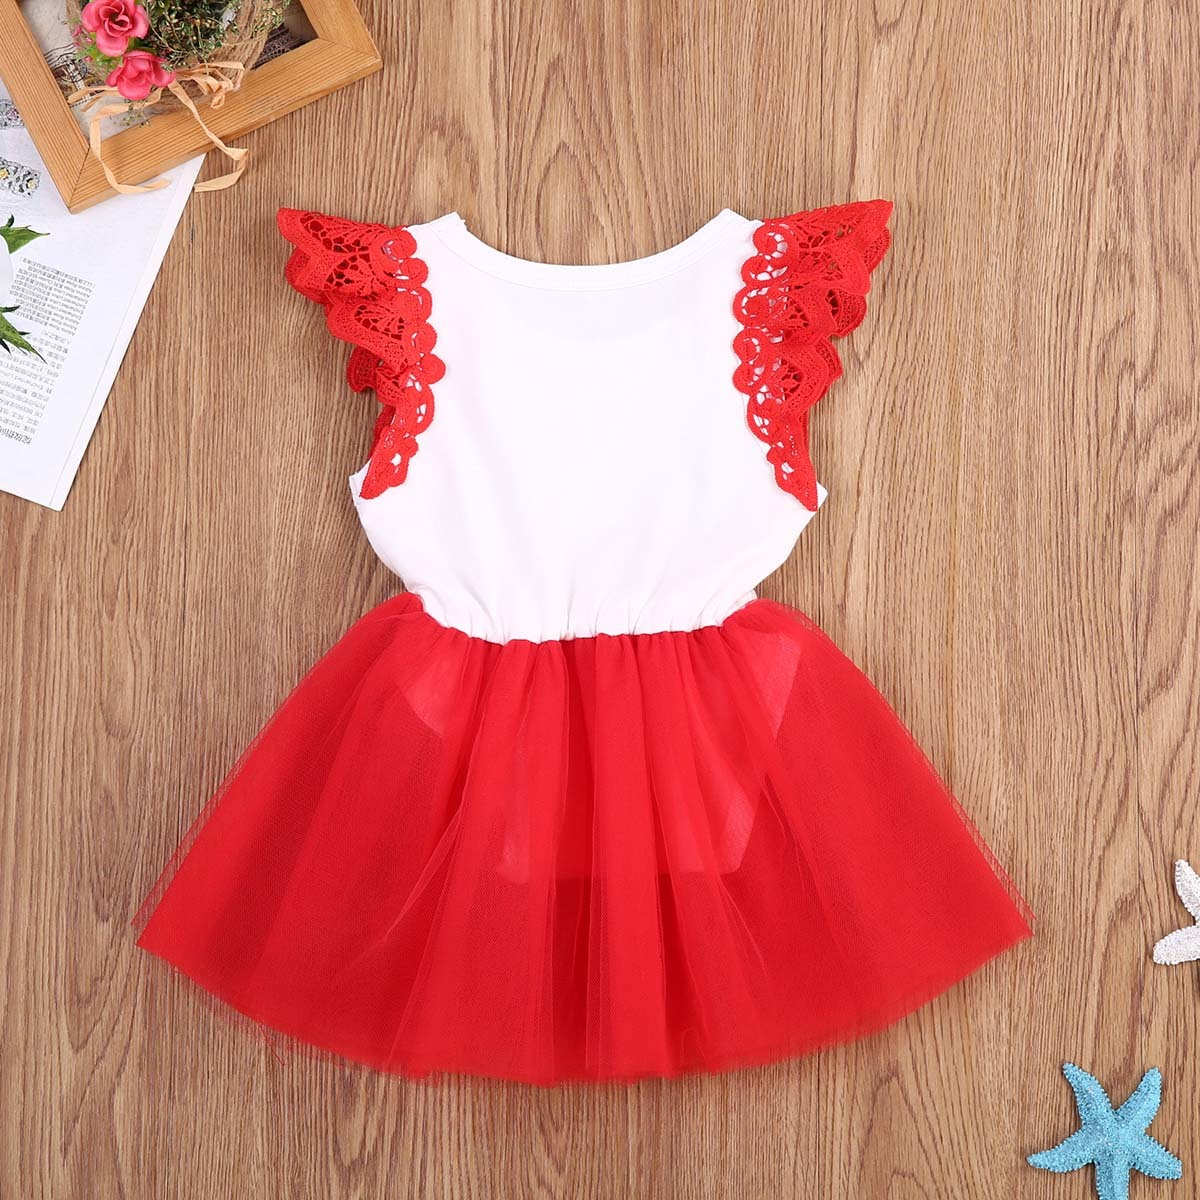 Pudcoco 2017 New Christmas Baby Girls Romper Cute Letter Lace Off shoulder Princess Red Romper Jumpsuit for baby first christmas Y18102907